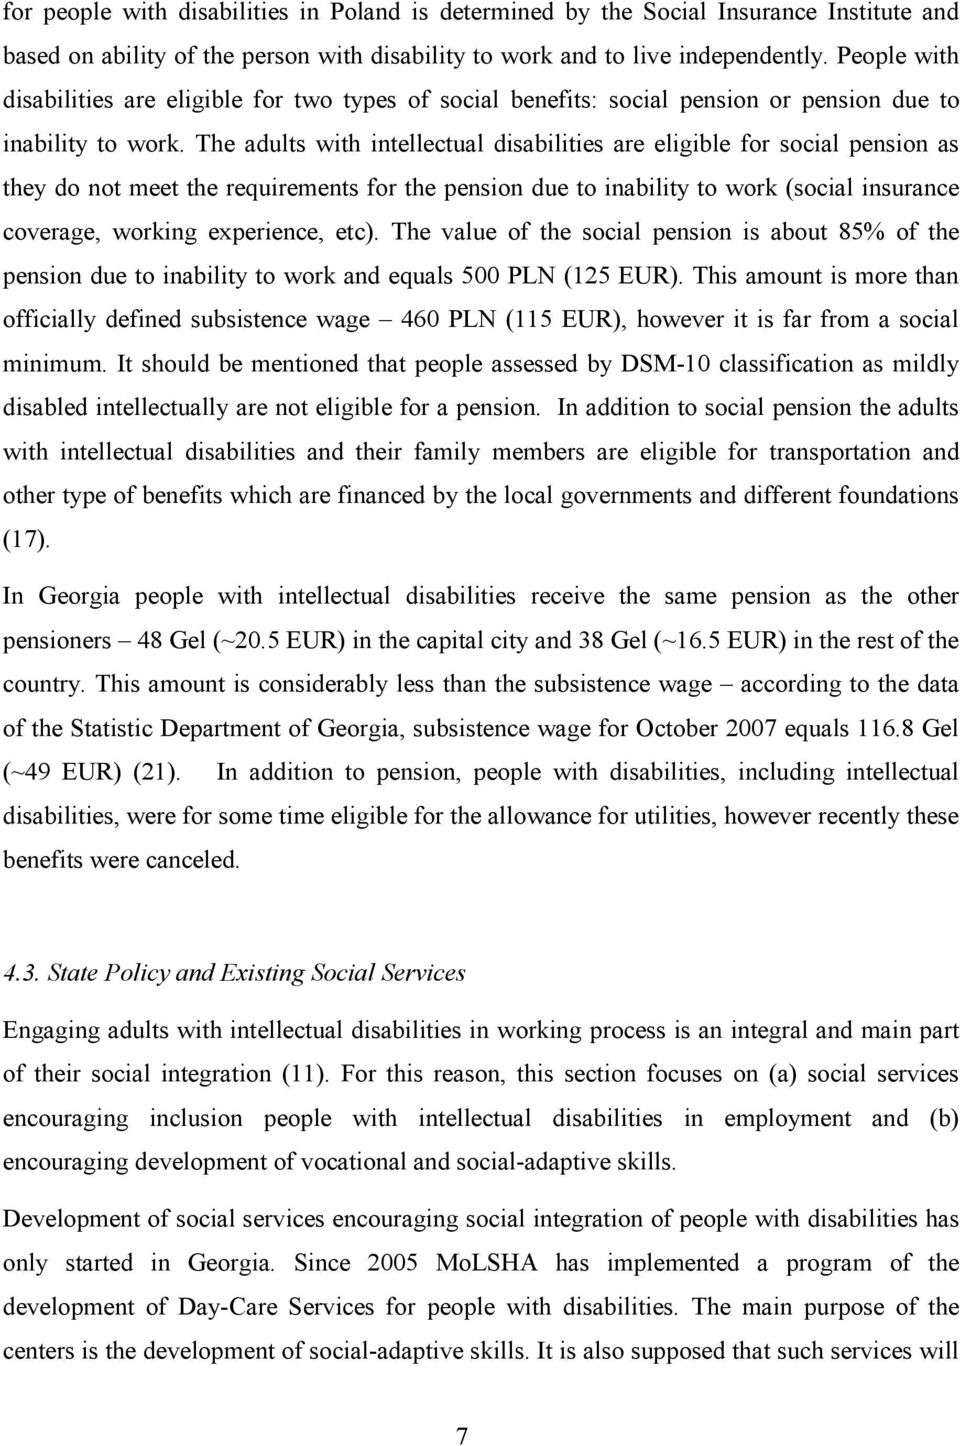 The adults with intellectual disabilities are eligible for social pension as they do not meet the requirements for the pension due to inability to work (social insurance coverage, working experience,